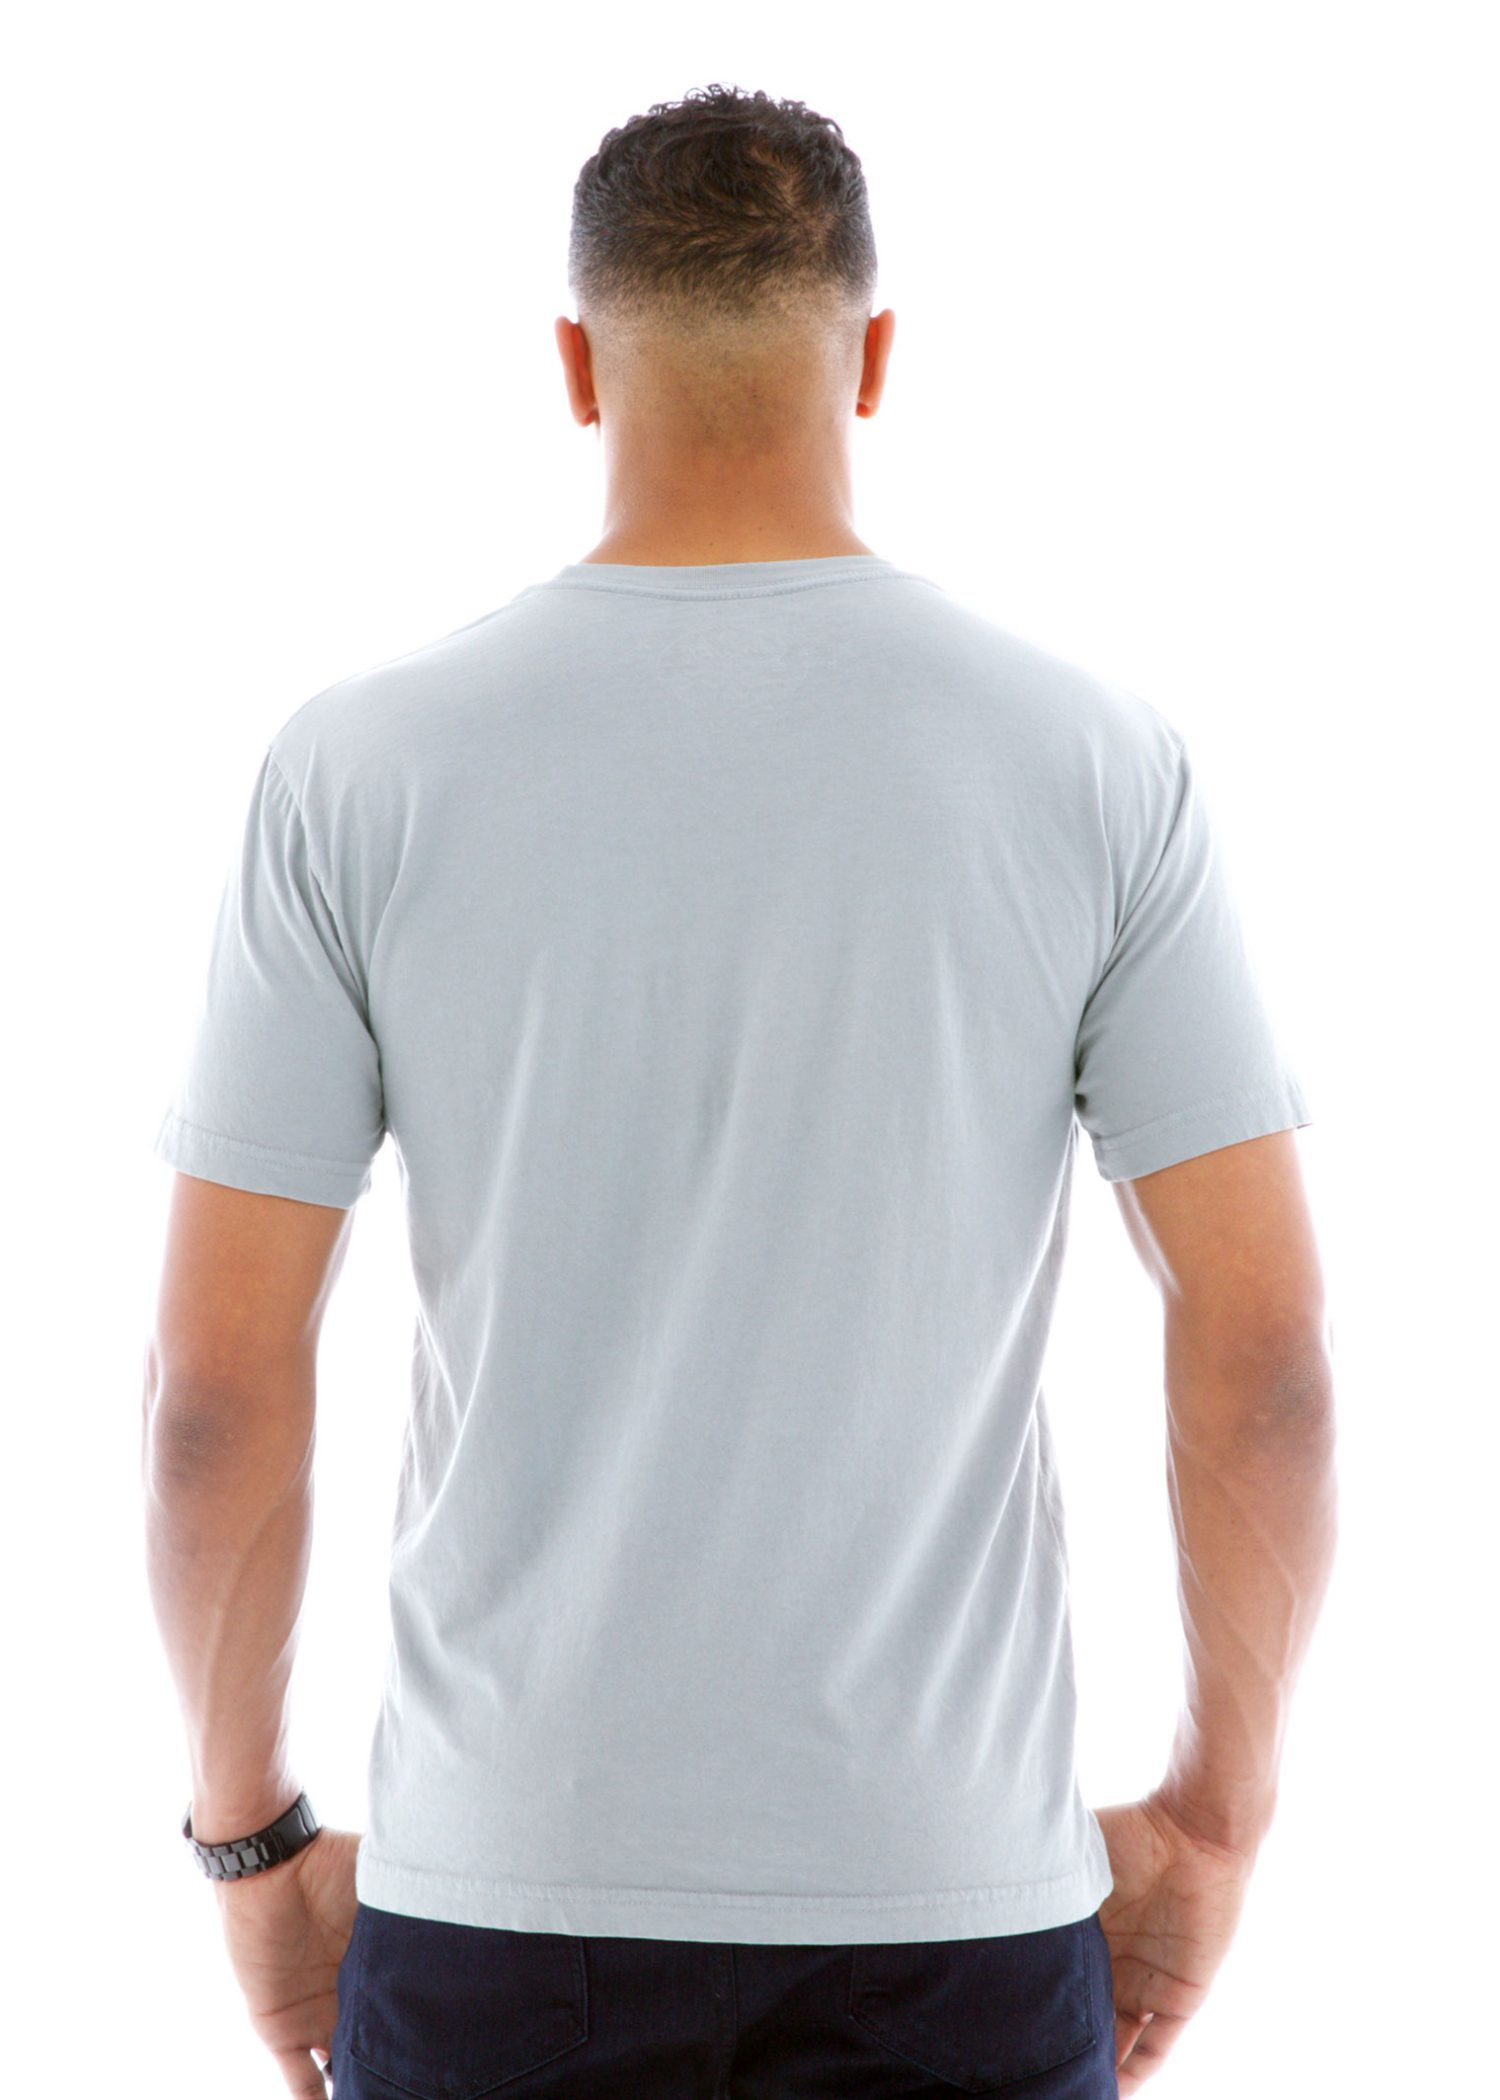 Fine Jersey Crew Short Sleeve T-Shirt Back View